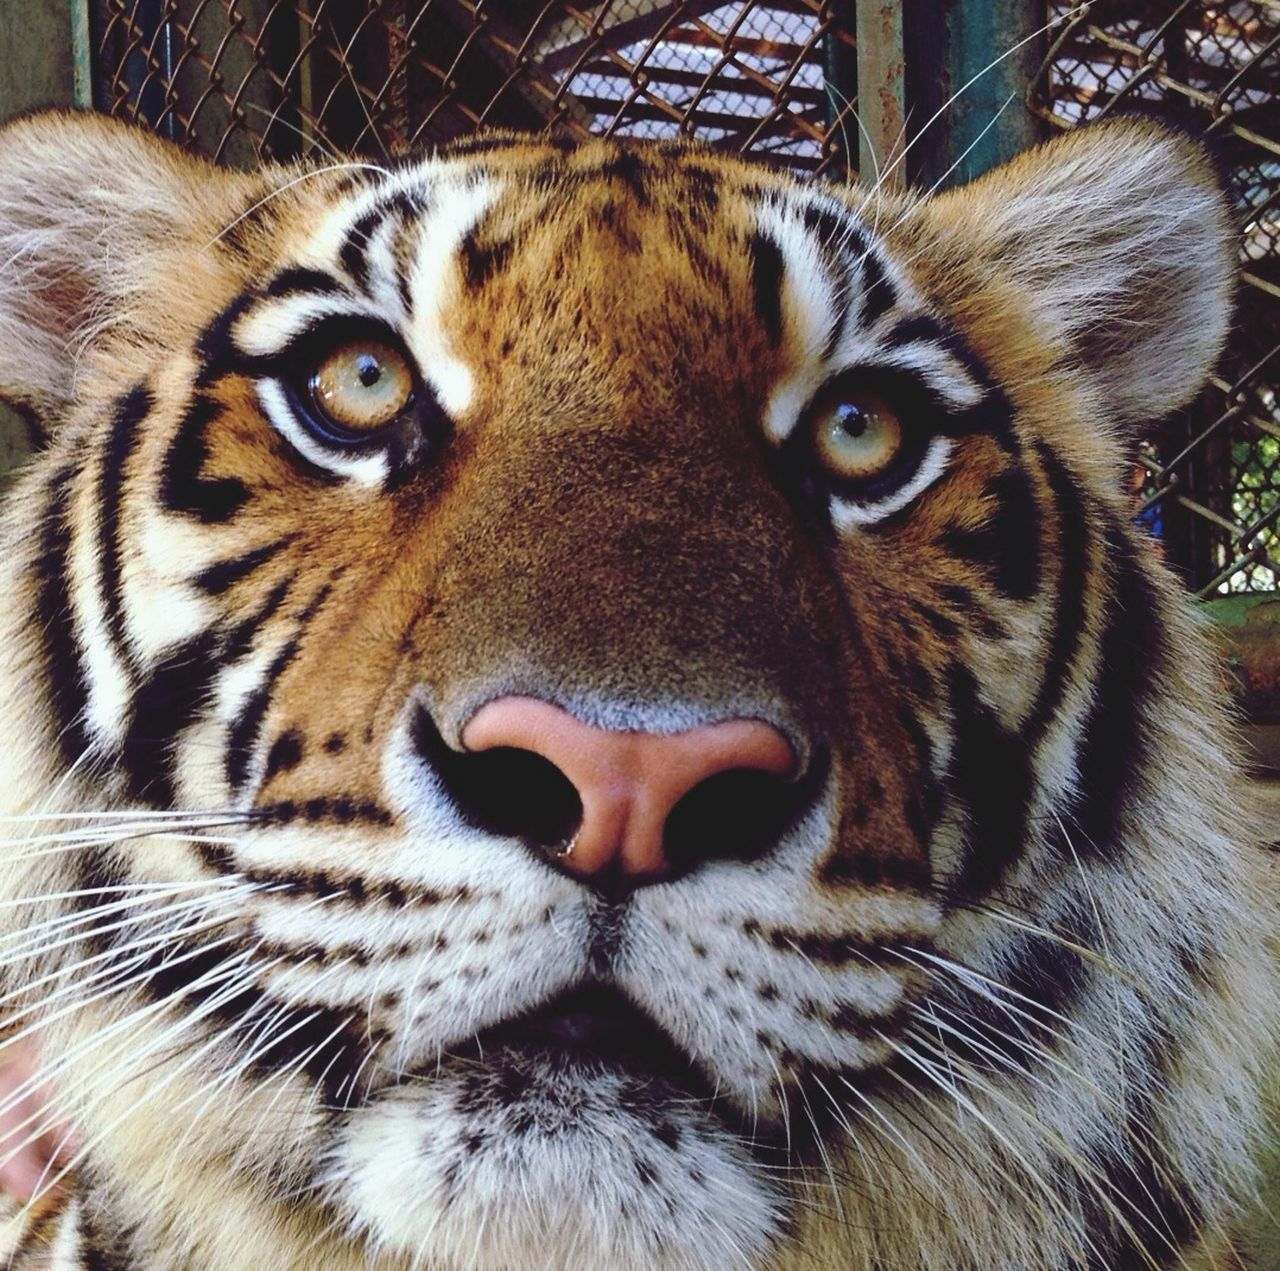 Close Up View Of Tiger